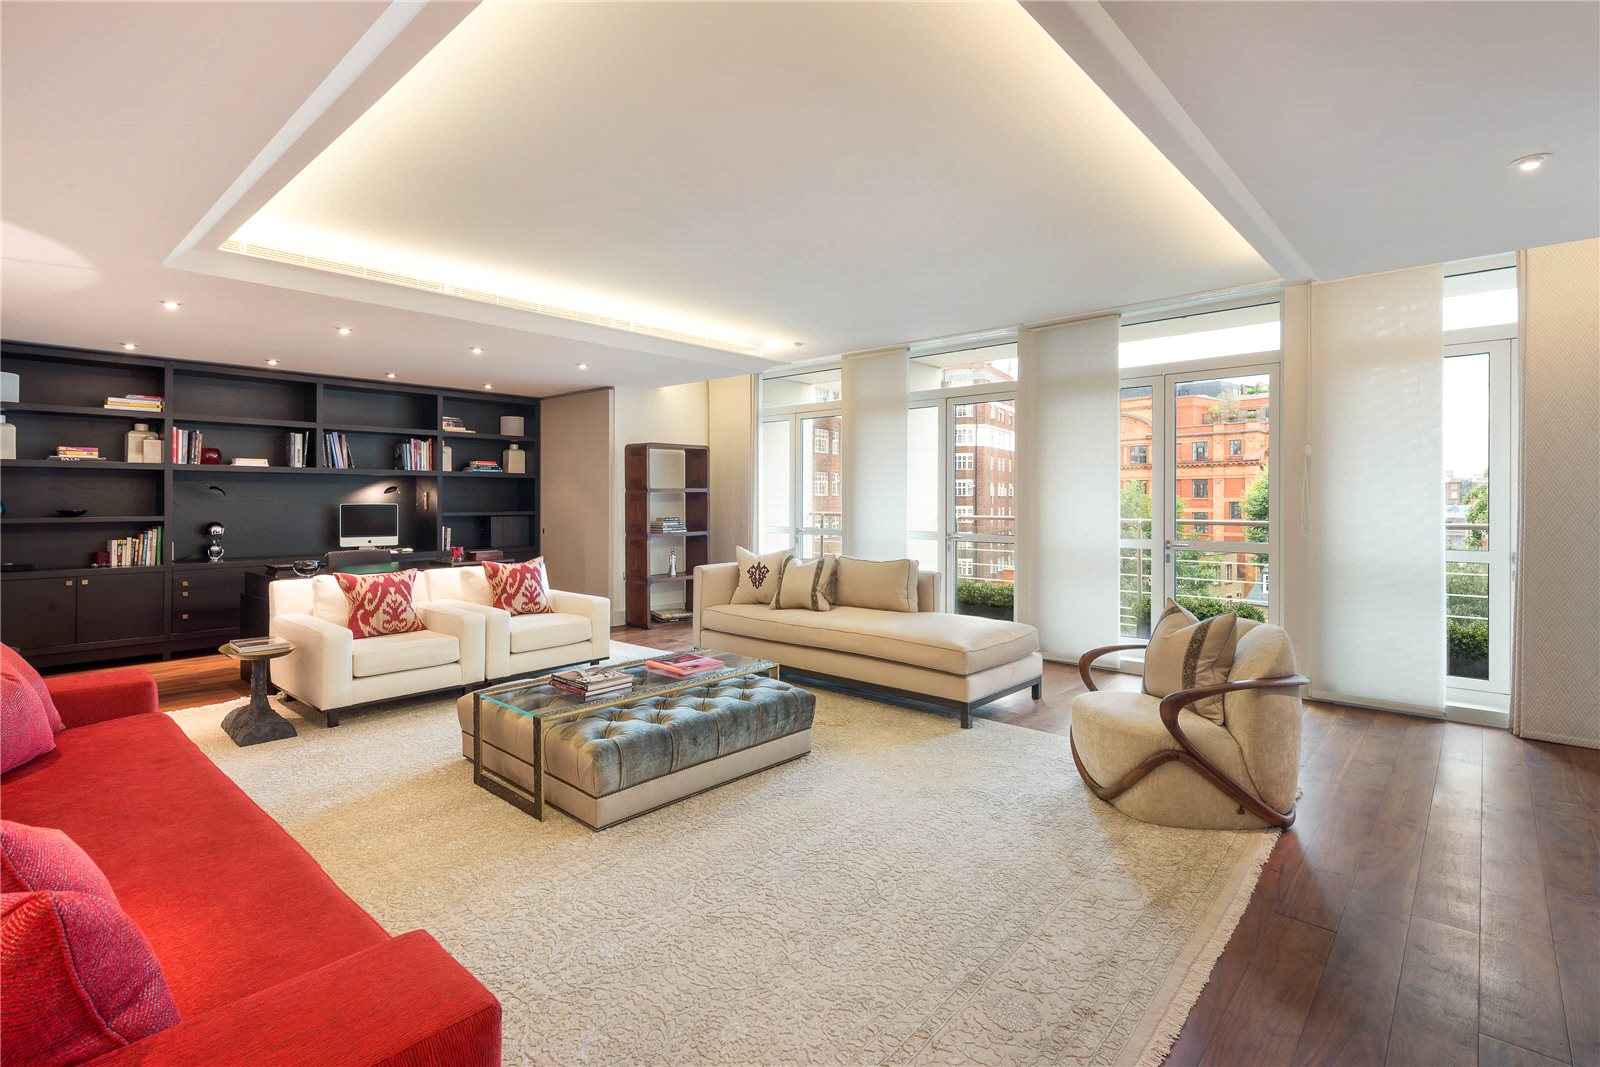 Apartments / Residences for Sale at Lancelot Place, London, SW7 London, England